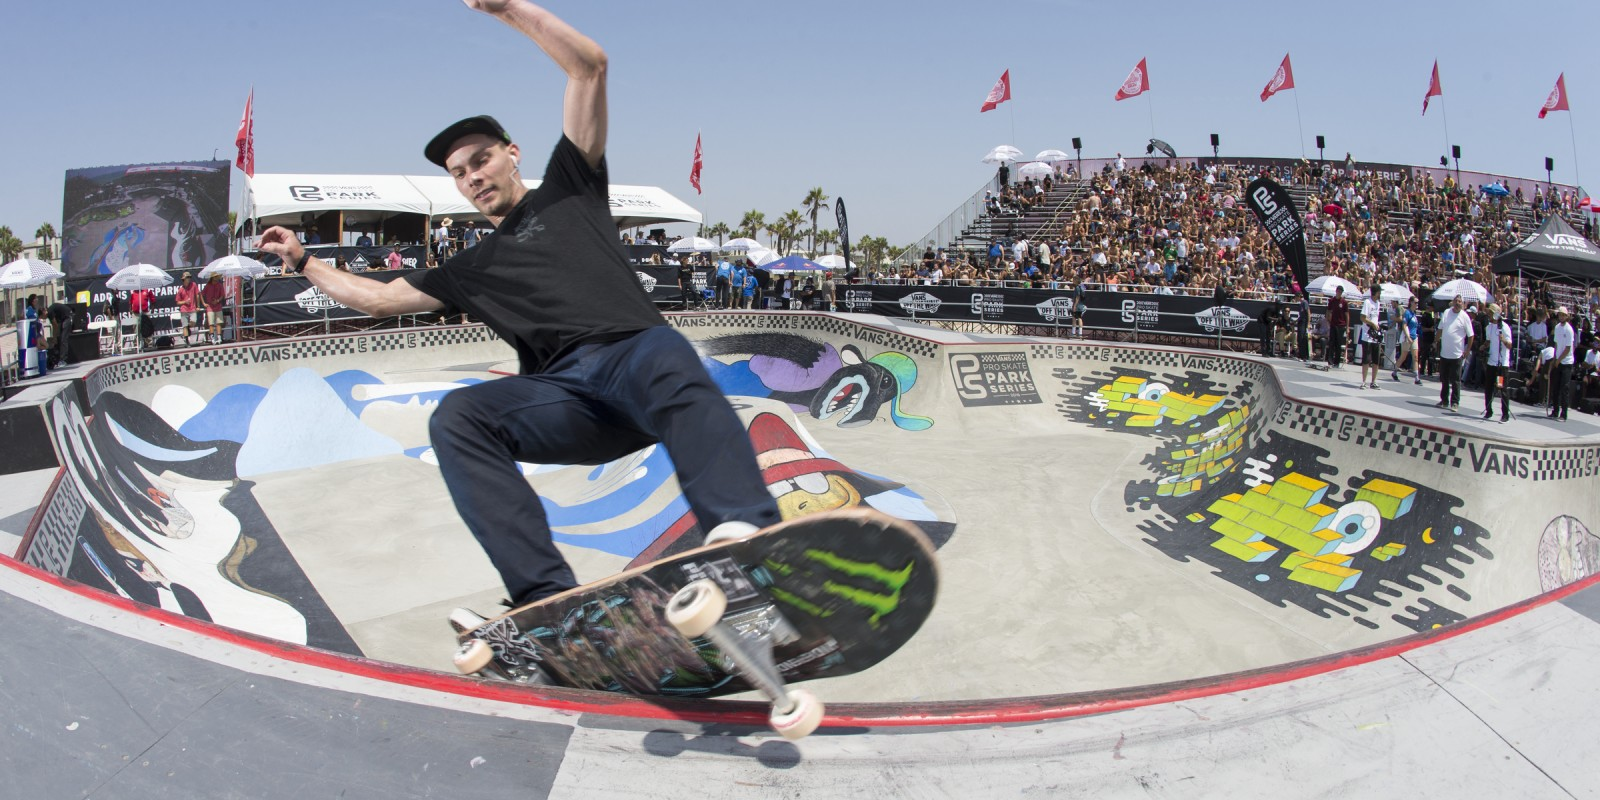 Ben Hatchell during the 2016 Vans Skatepark Series Contest in Huntington Beach, California